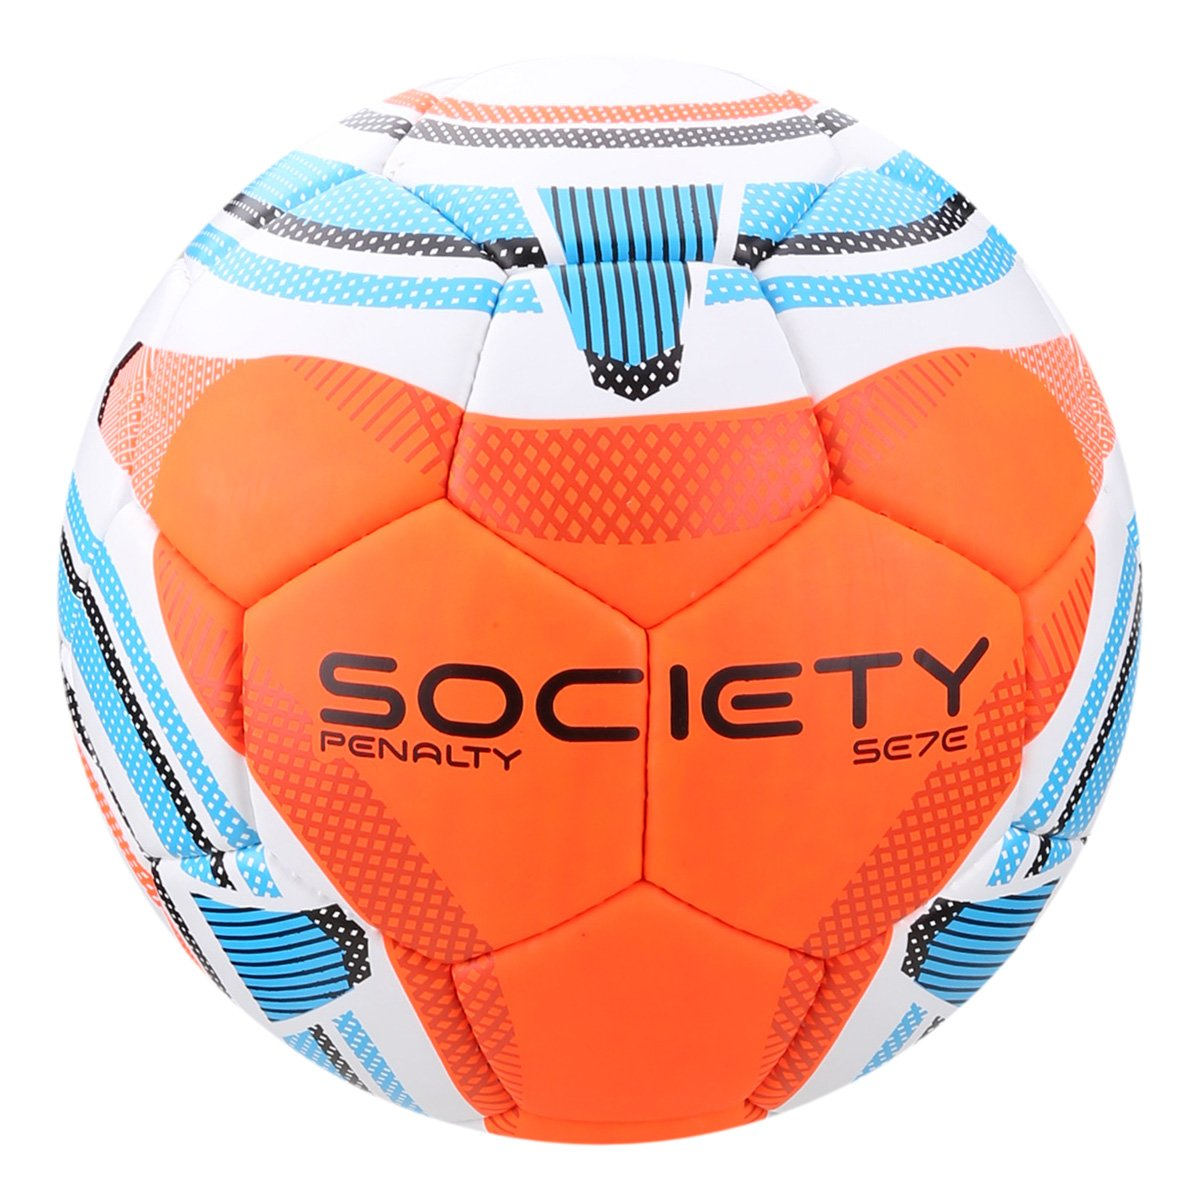 Shopping Smiles - Bola de Futebol Society Penalty Se7e N3 Ix d3293f0176608